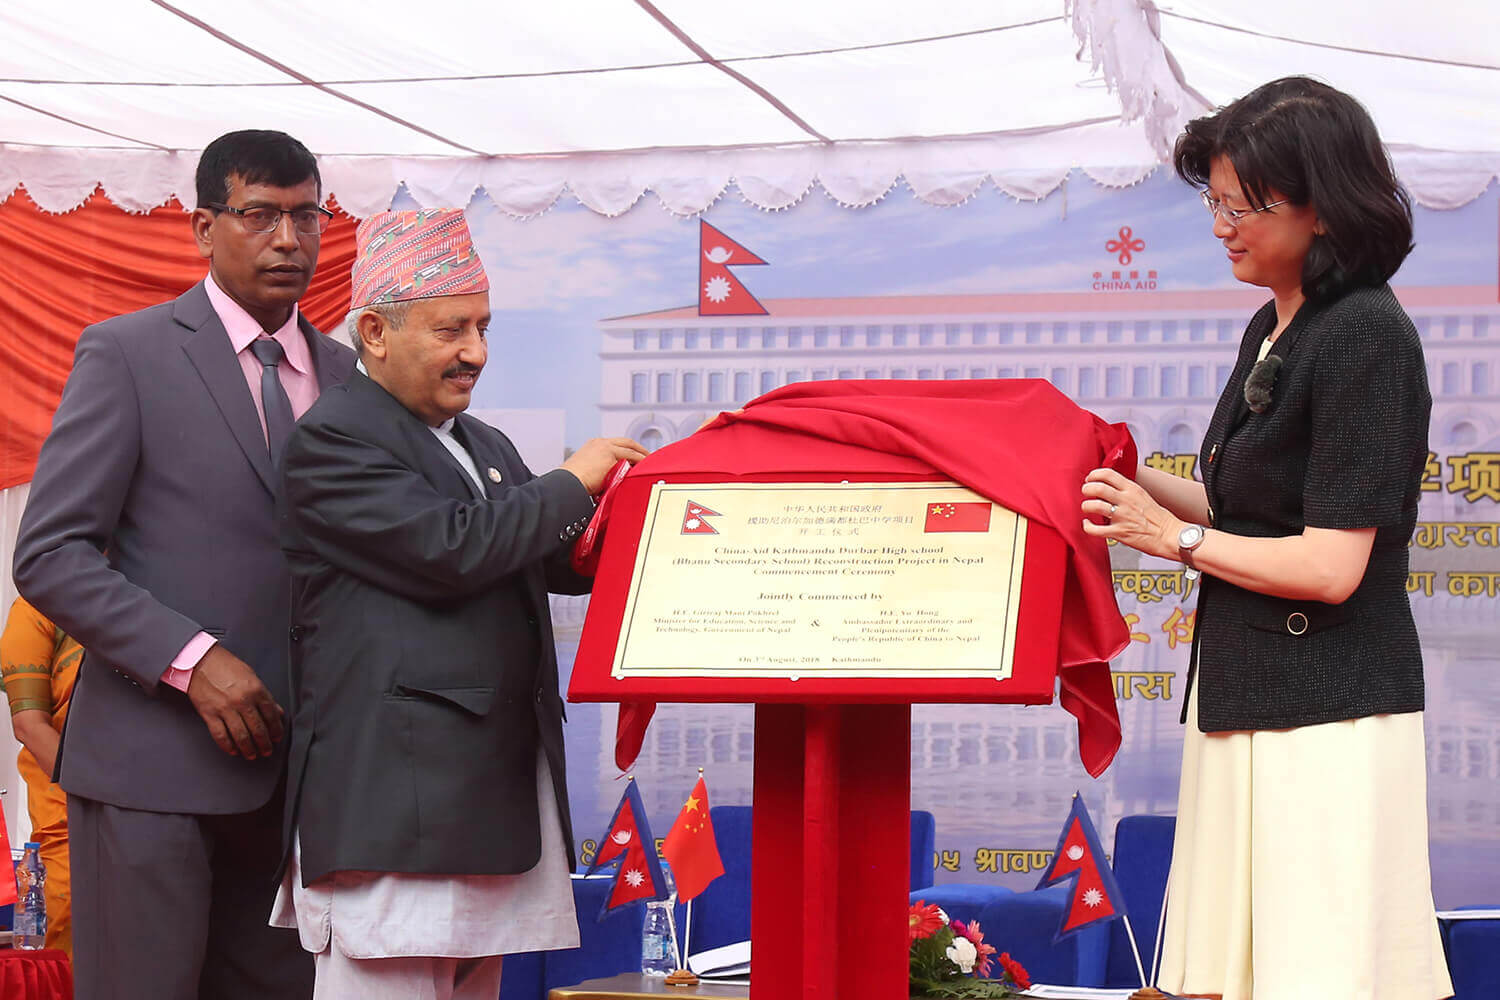 Foundation stone for Darbar High